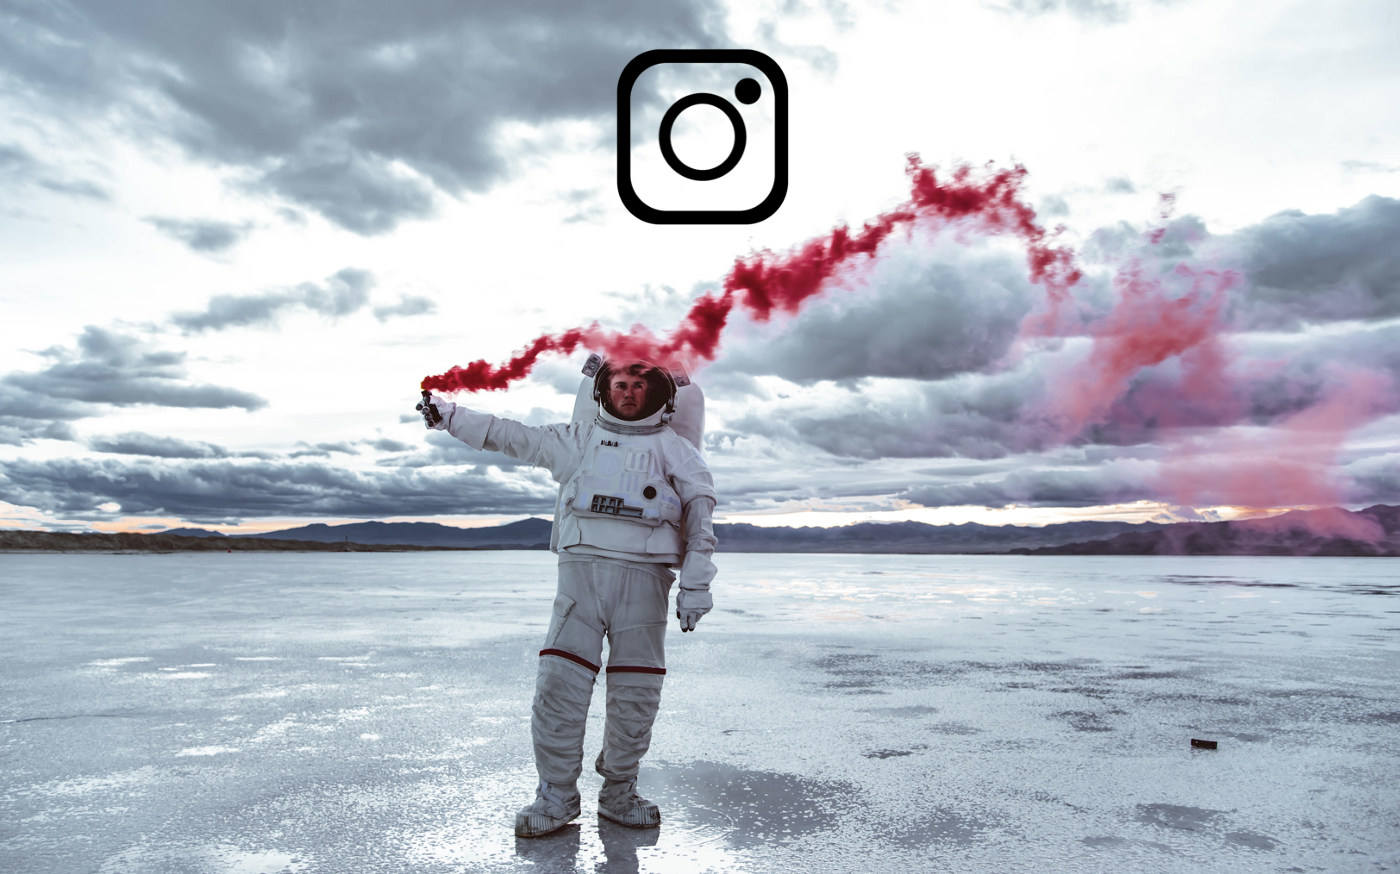 Man wearing a spacesuit holds a red smoke signal flare while standing in a frozen tundra.